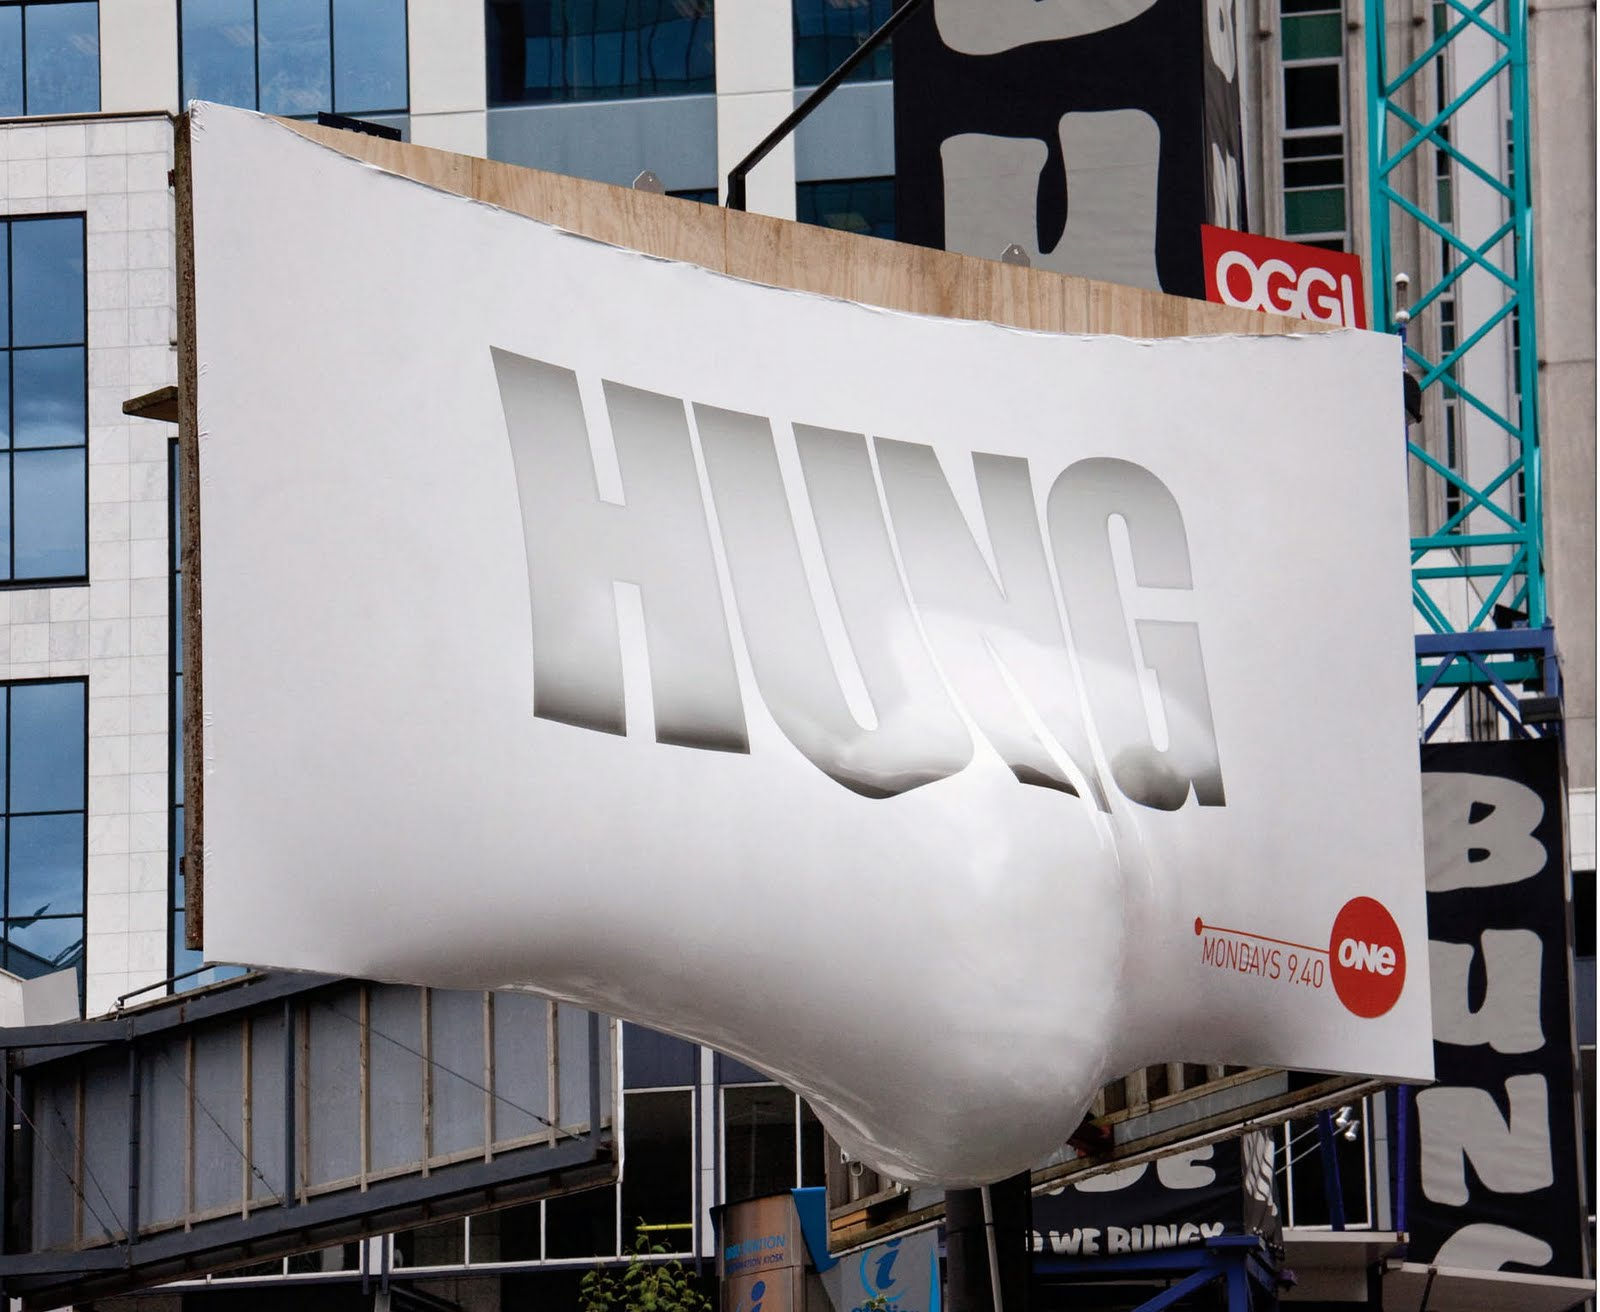 Hung's Bulging New Billboard Is Full of Spunk